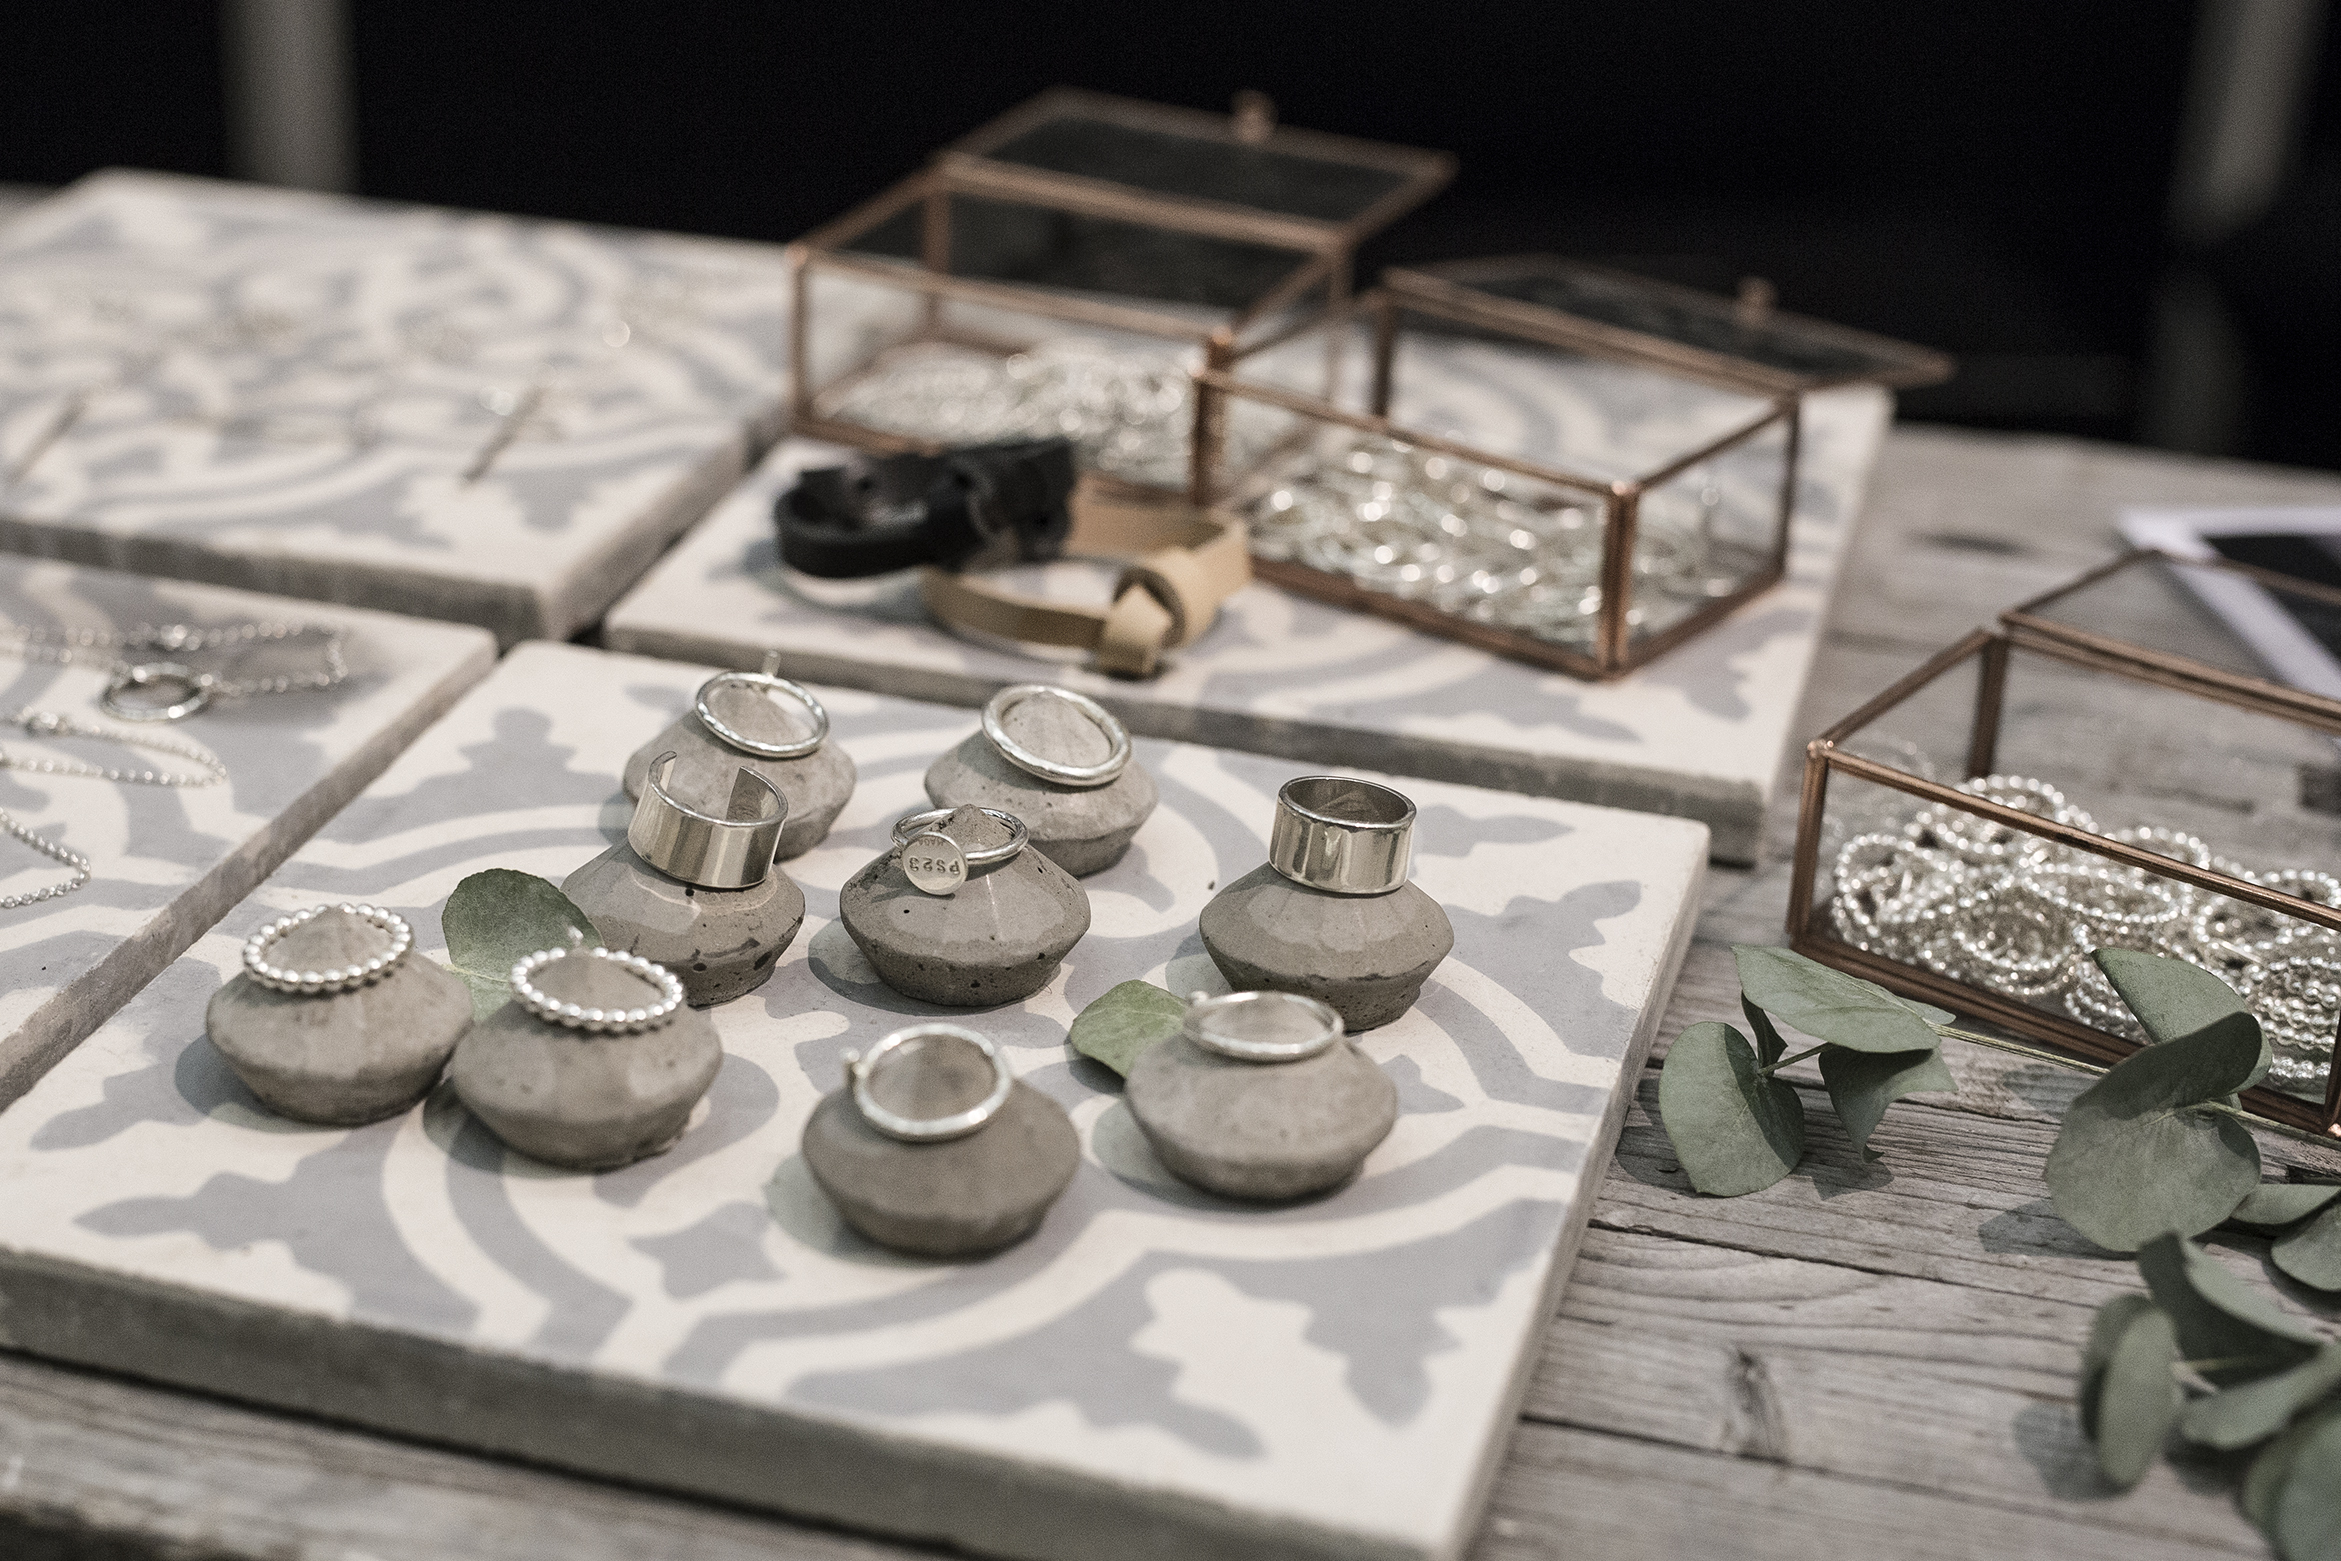 Hand-made jewellery from Silversmith:Syns På Haga